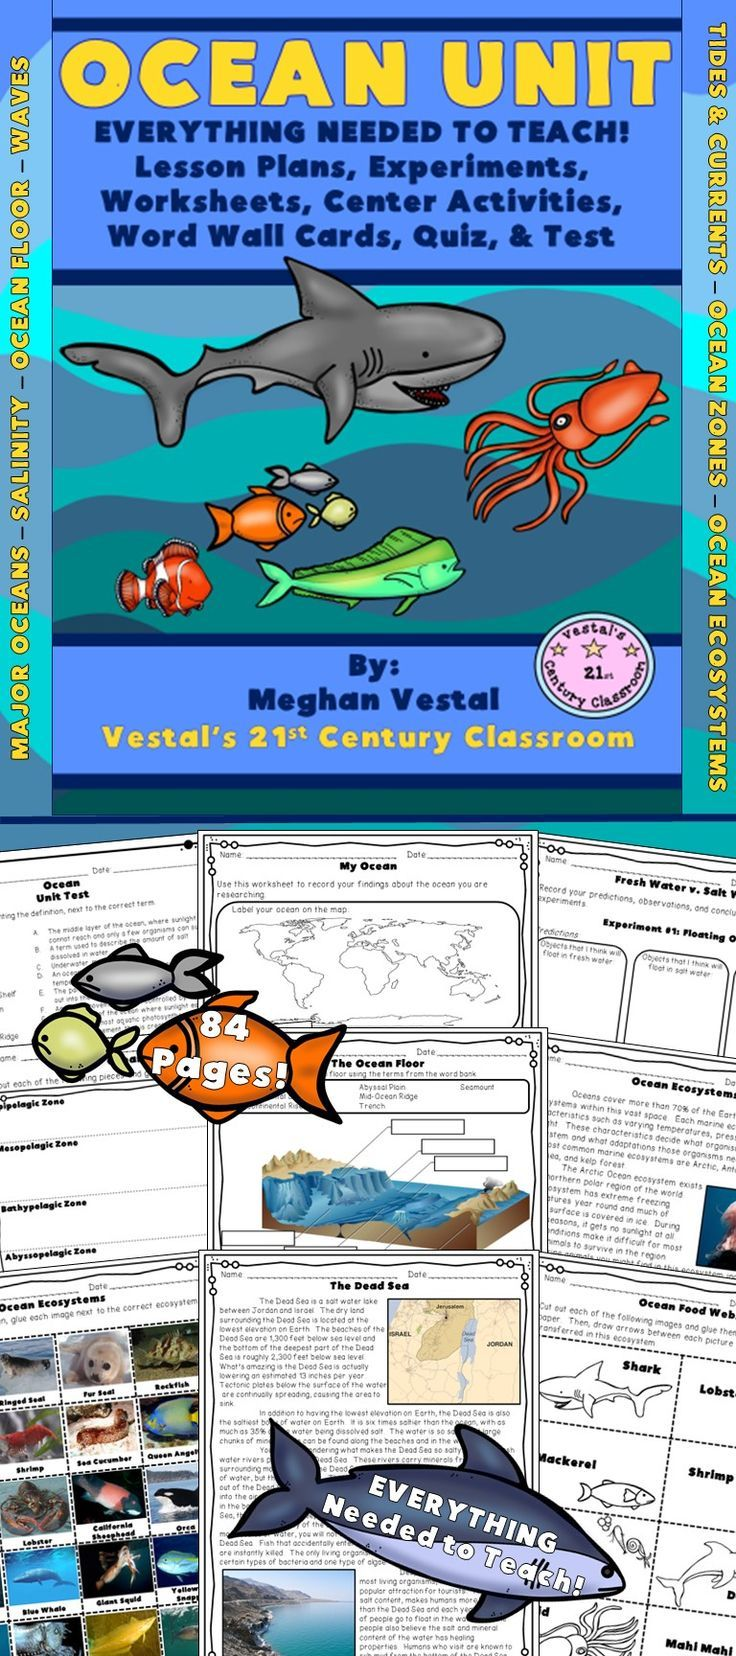 The ocean is an exciting topic to explore and EVERYTHING you need to teach a science unit on the ocean can be found in this 2 week, 84-page unit!  Topics taught include the major oceans, salinity, waves, tides, currents, the ocean floor, ocean zones, and ocean ecosystems.